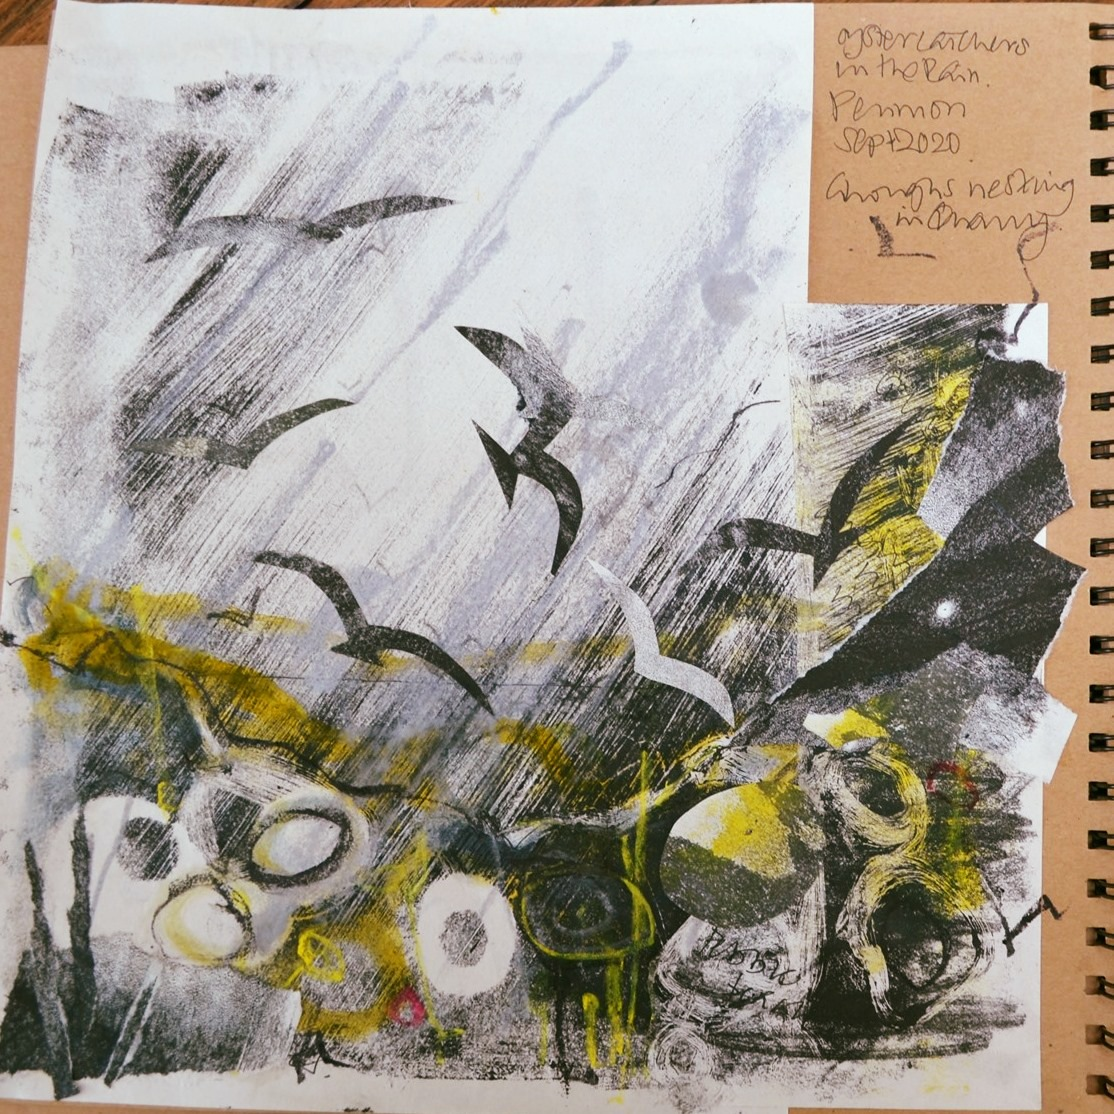 Oystercatchers. Collaging monoprints with over-painting and mark-making in ink and pastel.